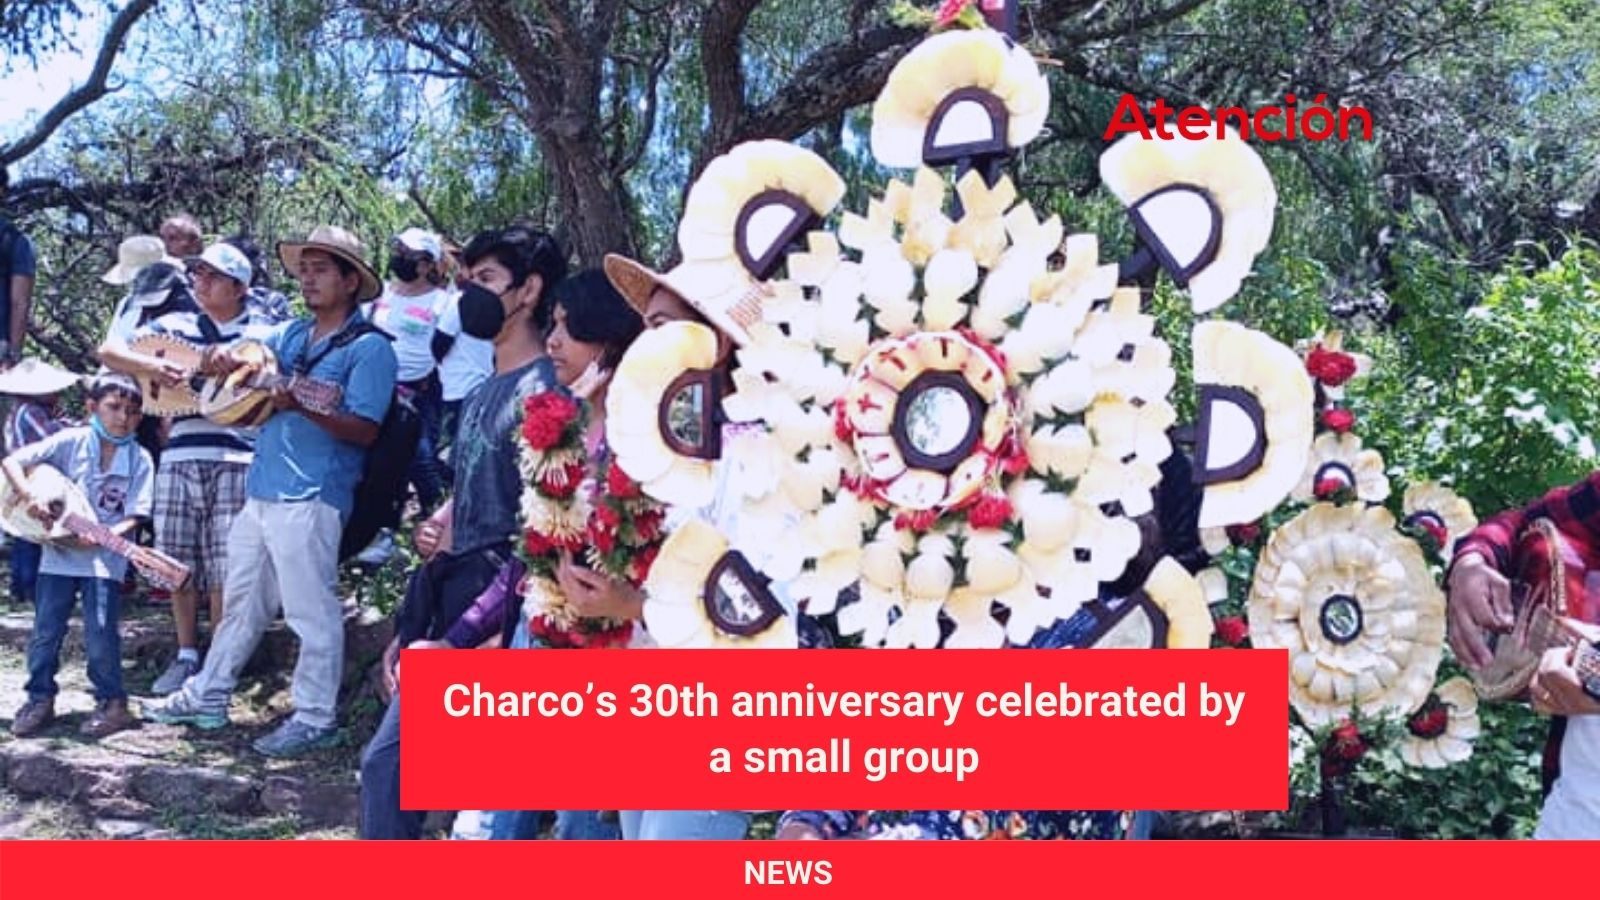 Charcos-30th-anniversary-celebrated-by-a-small-group.jpg